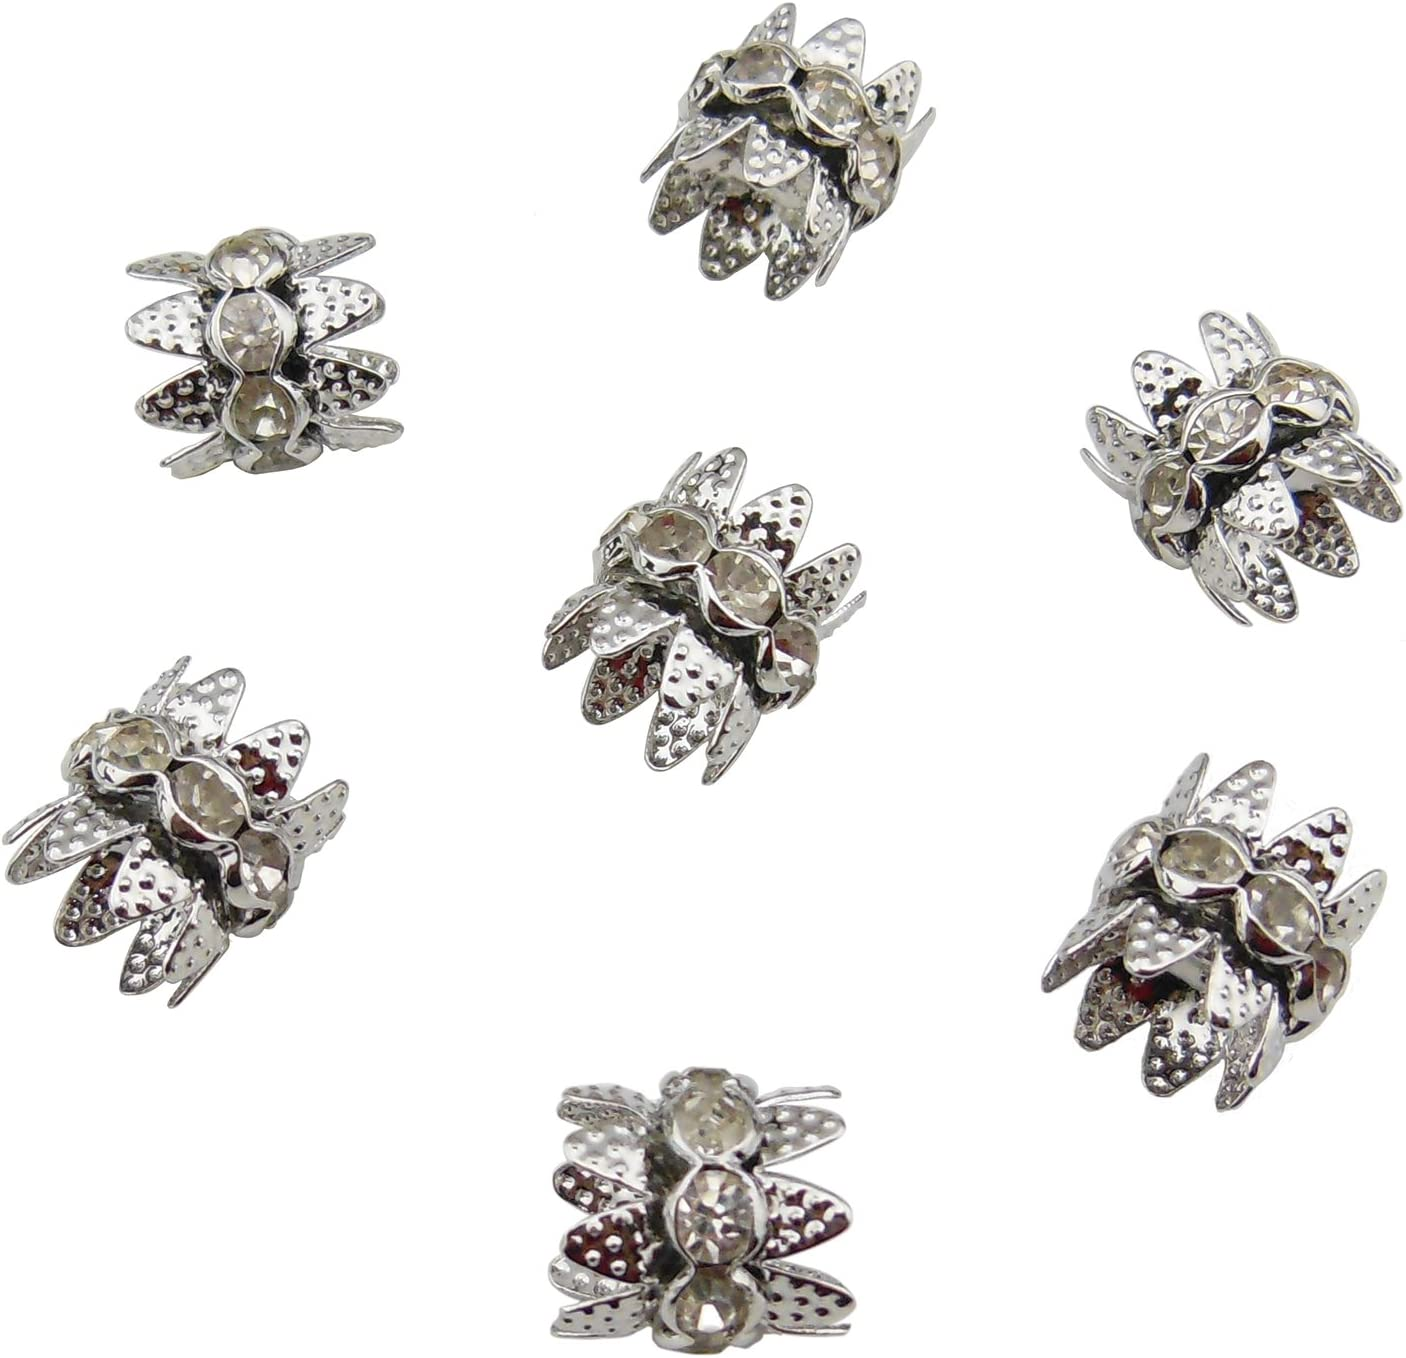 HT-1000-100RG Coiris 100PCS 10mm Double Beads Caps with Rhinestone Filigree Flower Cup for Jewelry Making DIY